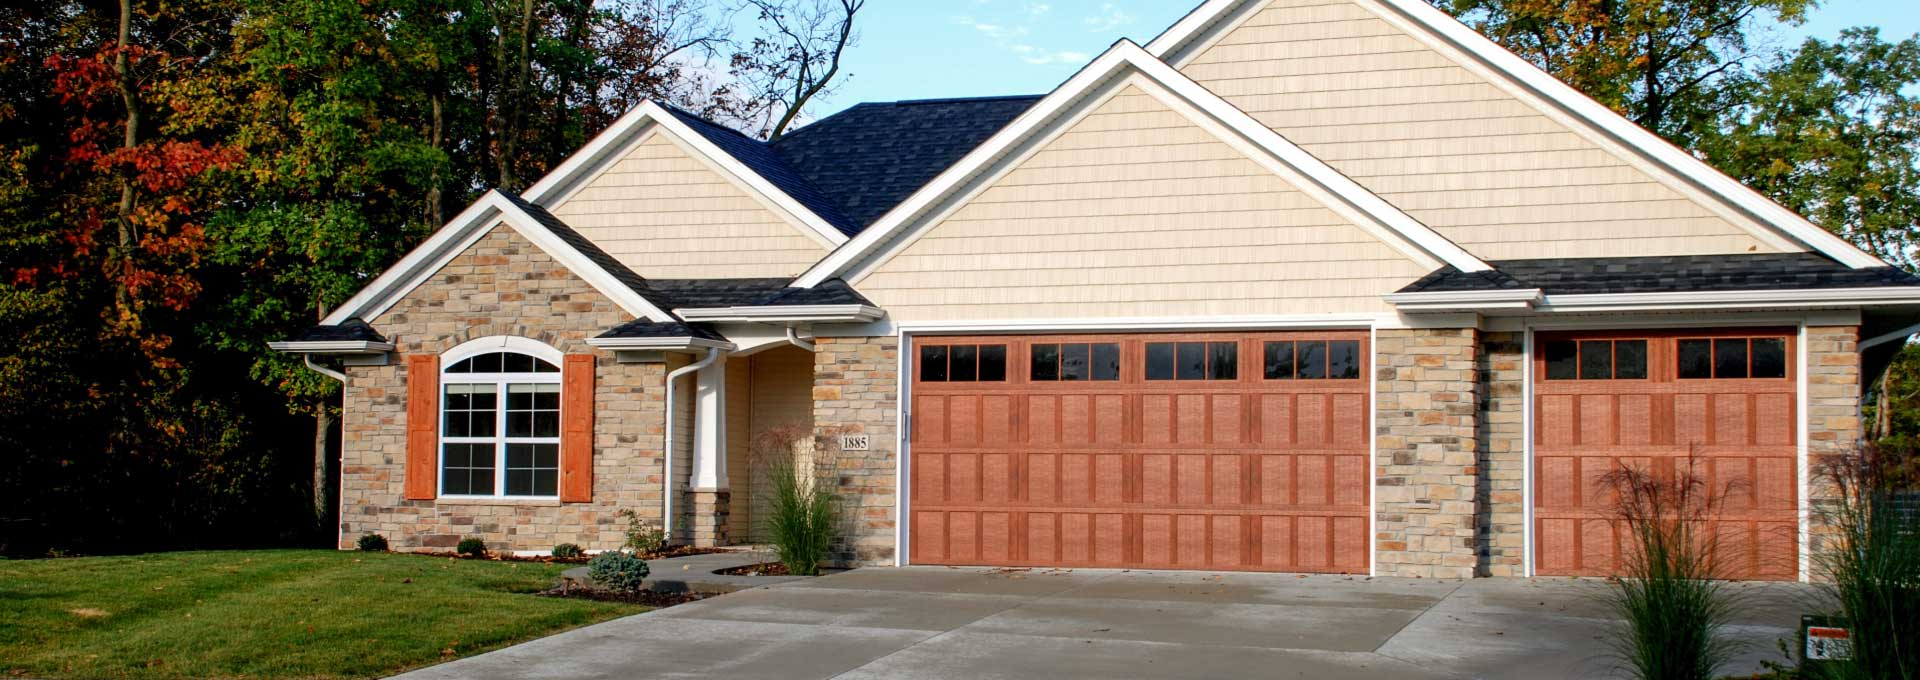 Distinctive maintenance free Carriage House designs available in stained and painted finishes.